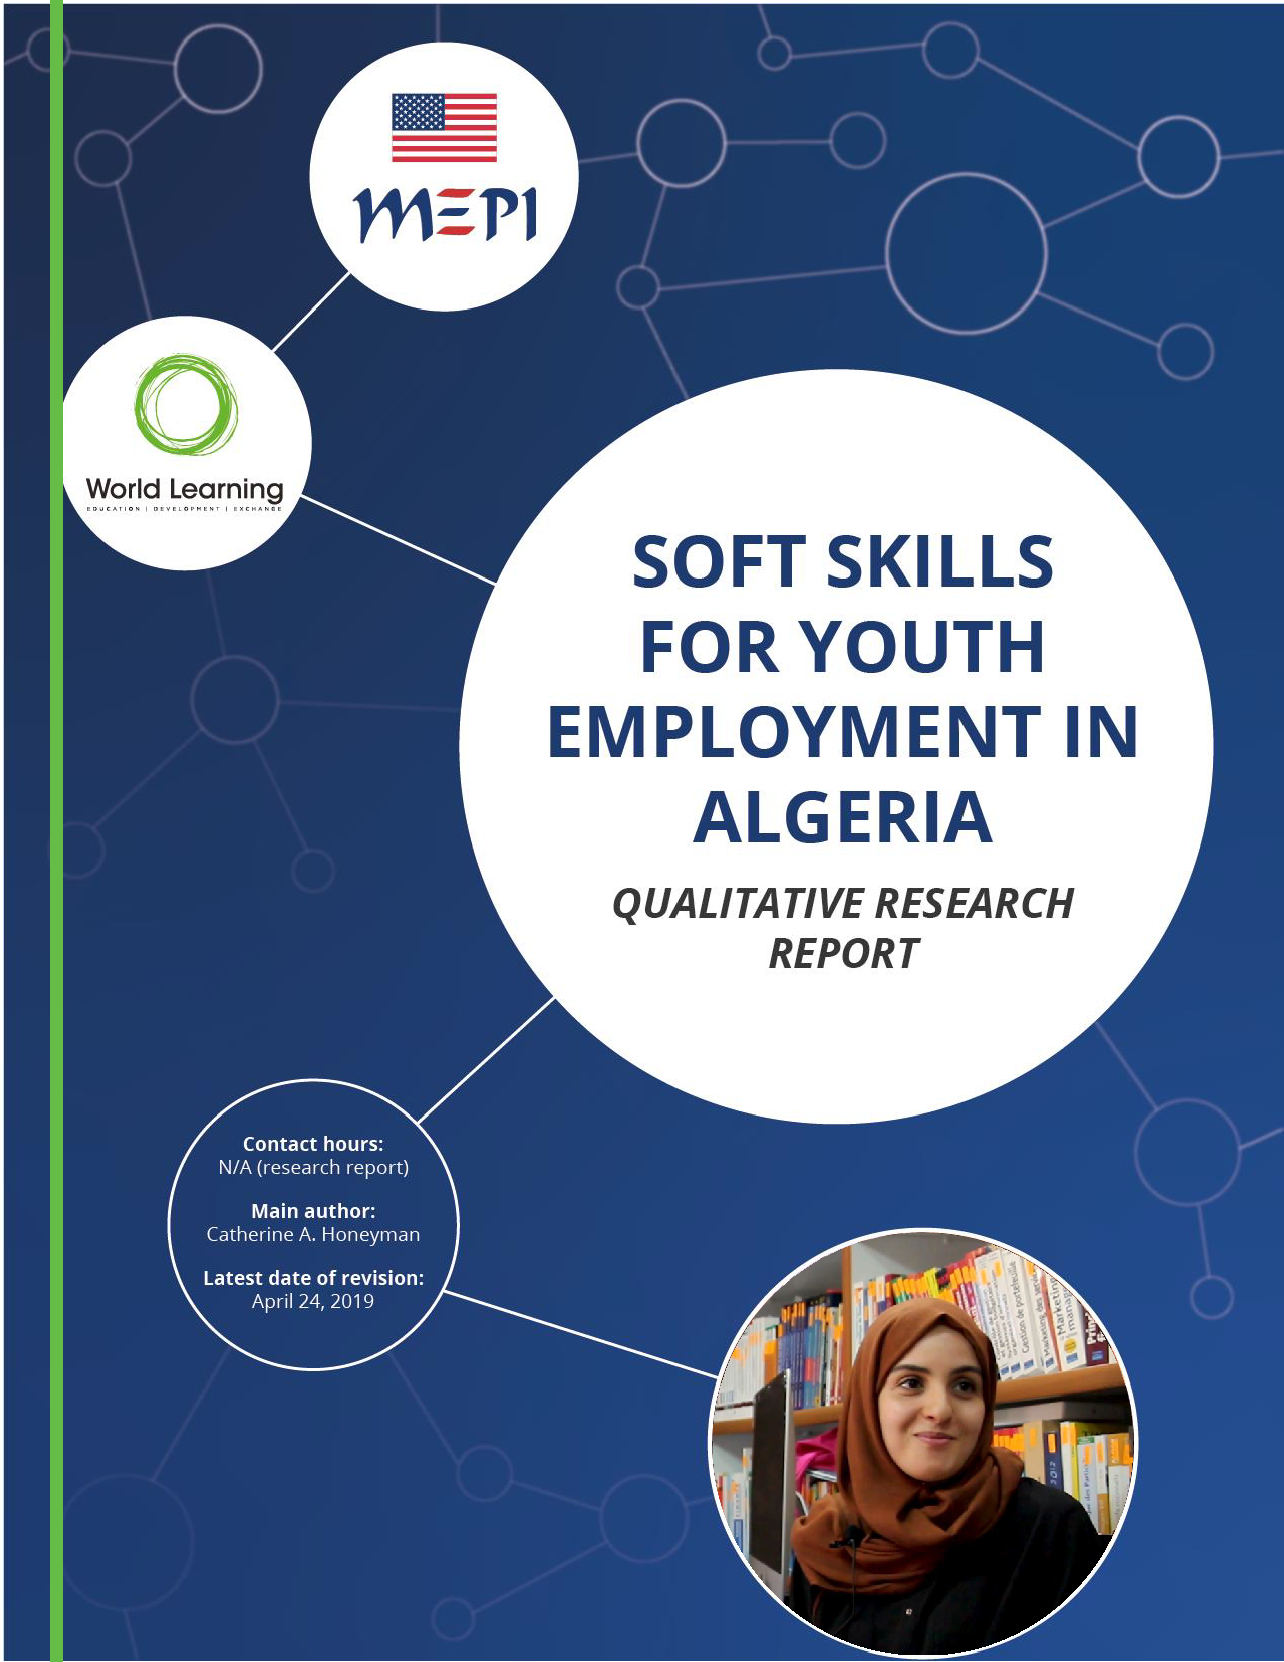 Soft Skills for Youth Employment in Algeria Qualitative Research Report